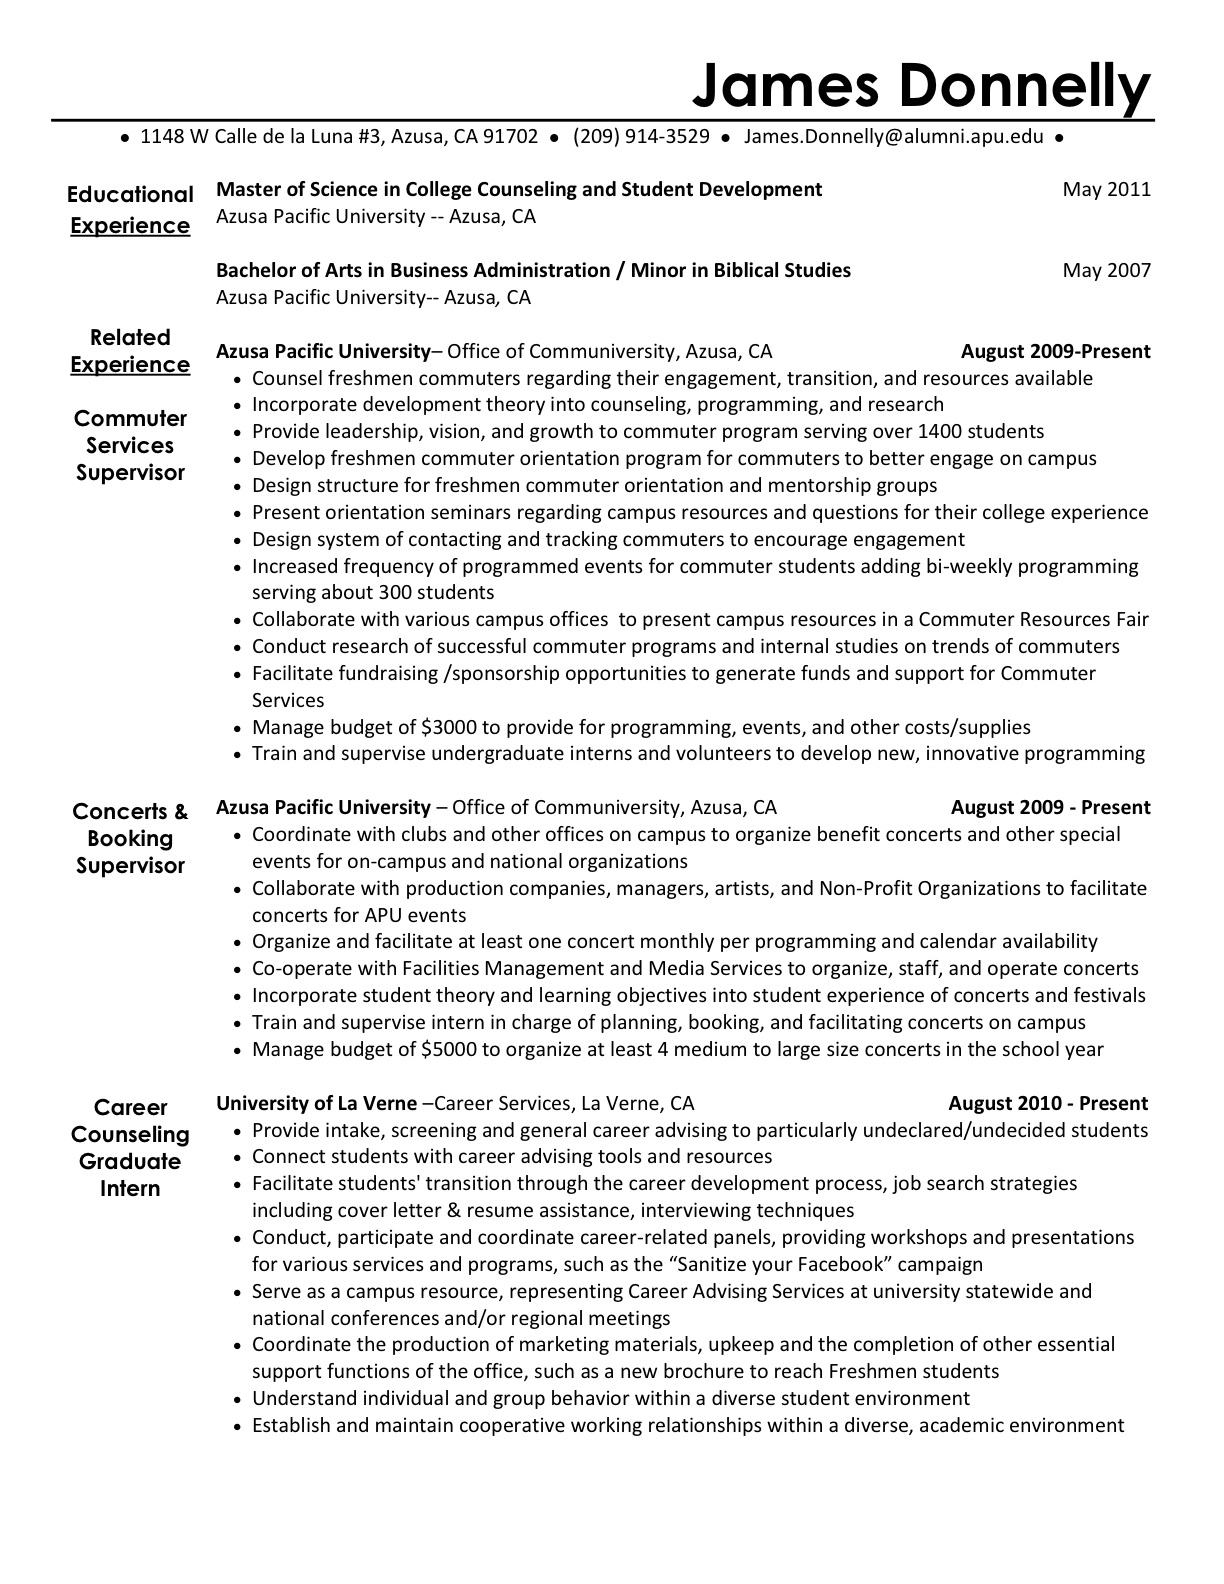 wwwisabellelancrayus scenic blank resume template - Activity Director Resume